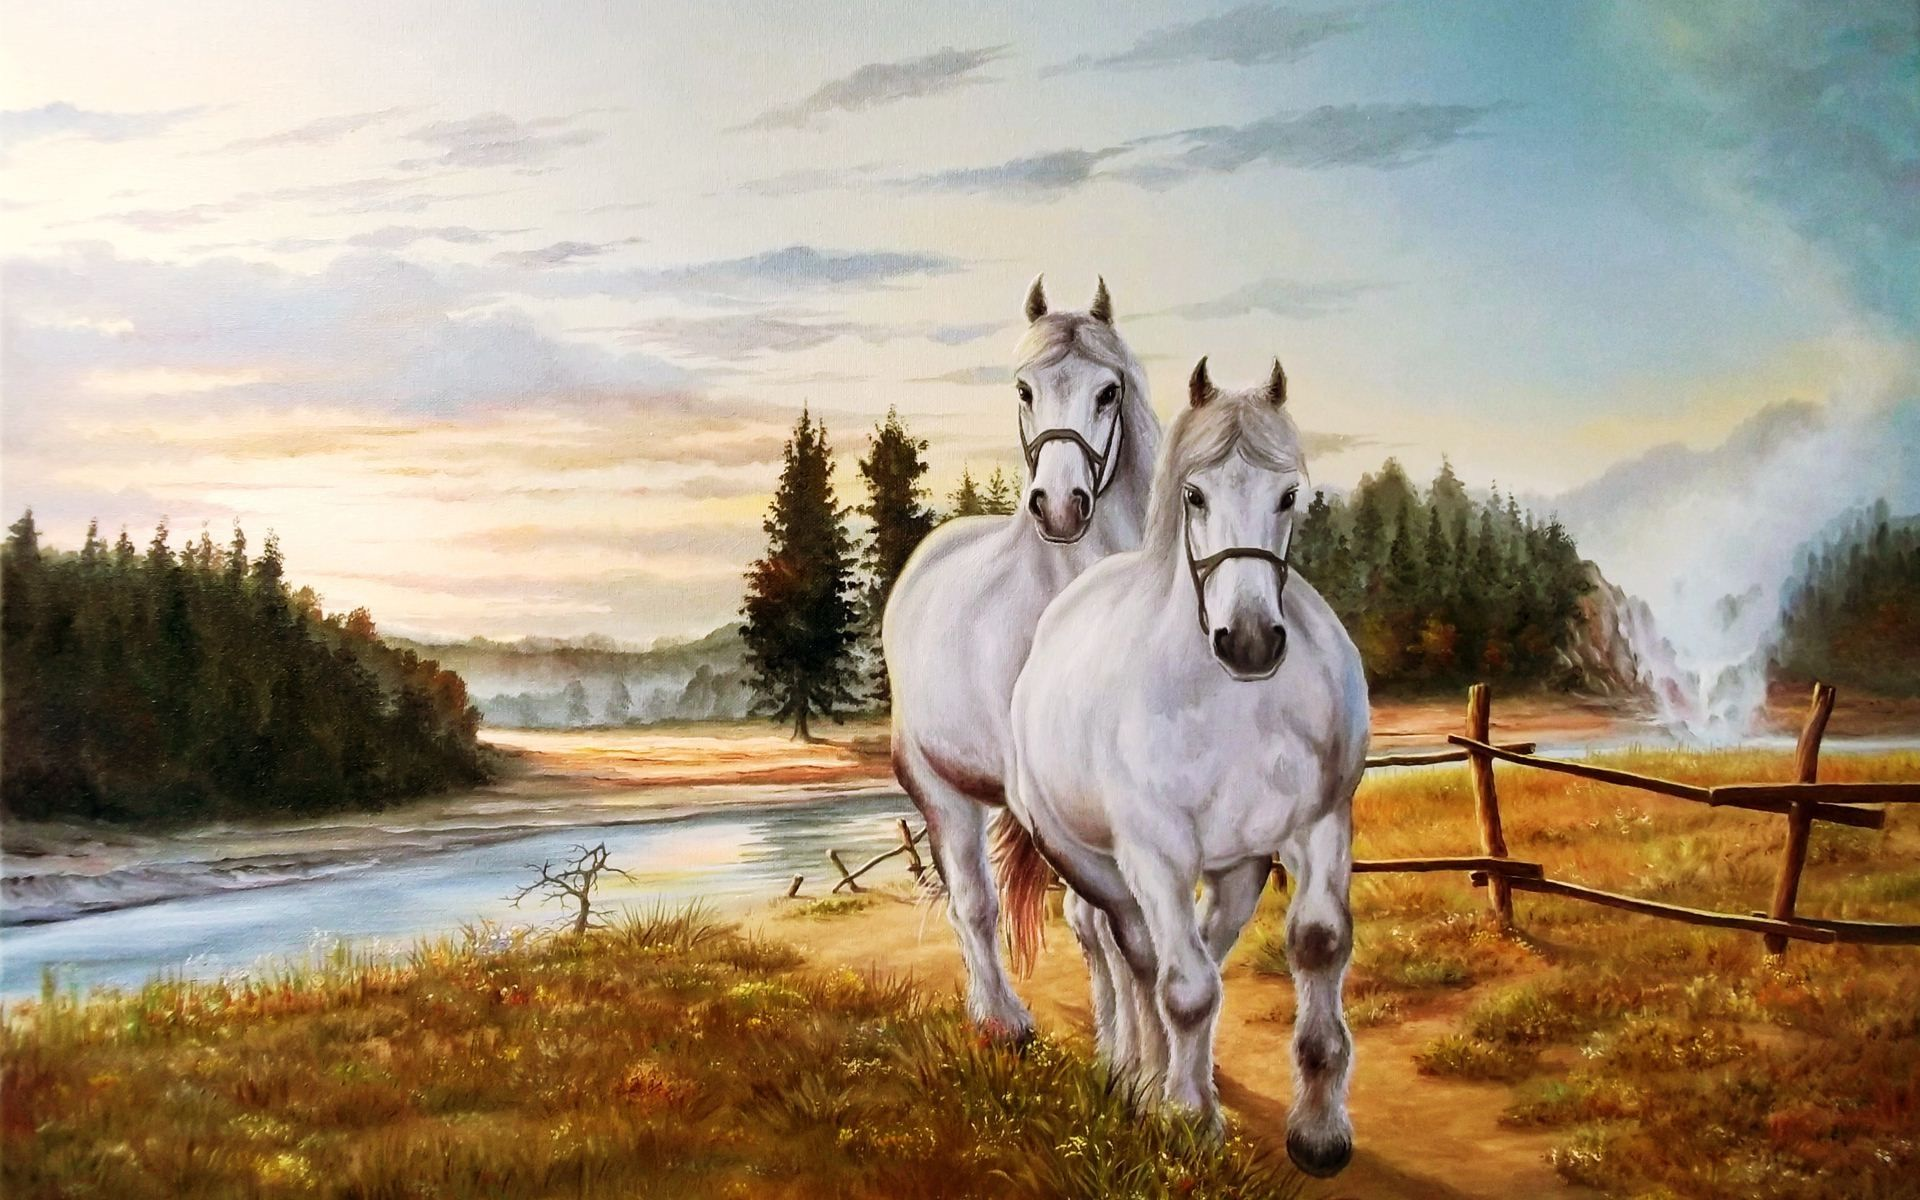 Cool Wallpaper Horse Couple - ea0380ea52148779214c3d2b50a1615f  Photograph_14367.jpg